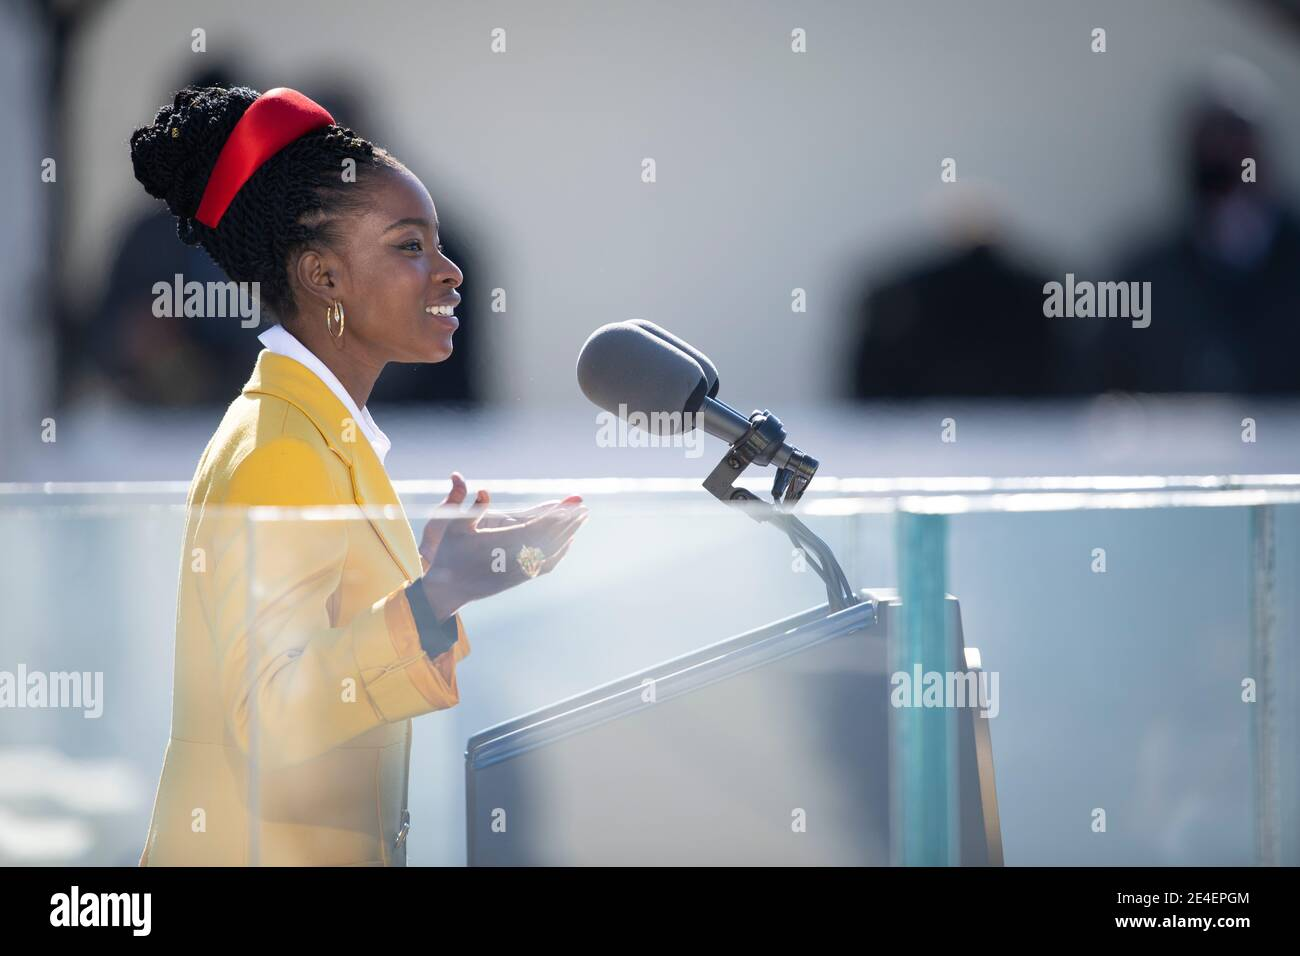 Washington, United States Of America. 20th Jan, 2021. Amanda Gorman recites her inaugural poem; The Hill We Climb, during the 59th Presidential Inauguration ceremony at the West Front of the U.S. Capitol January 20, 2021 in Washington, DC Credit: Planetpix/Alamy Live News Stock Photo